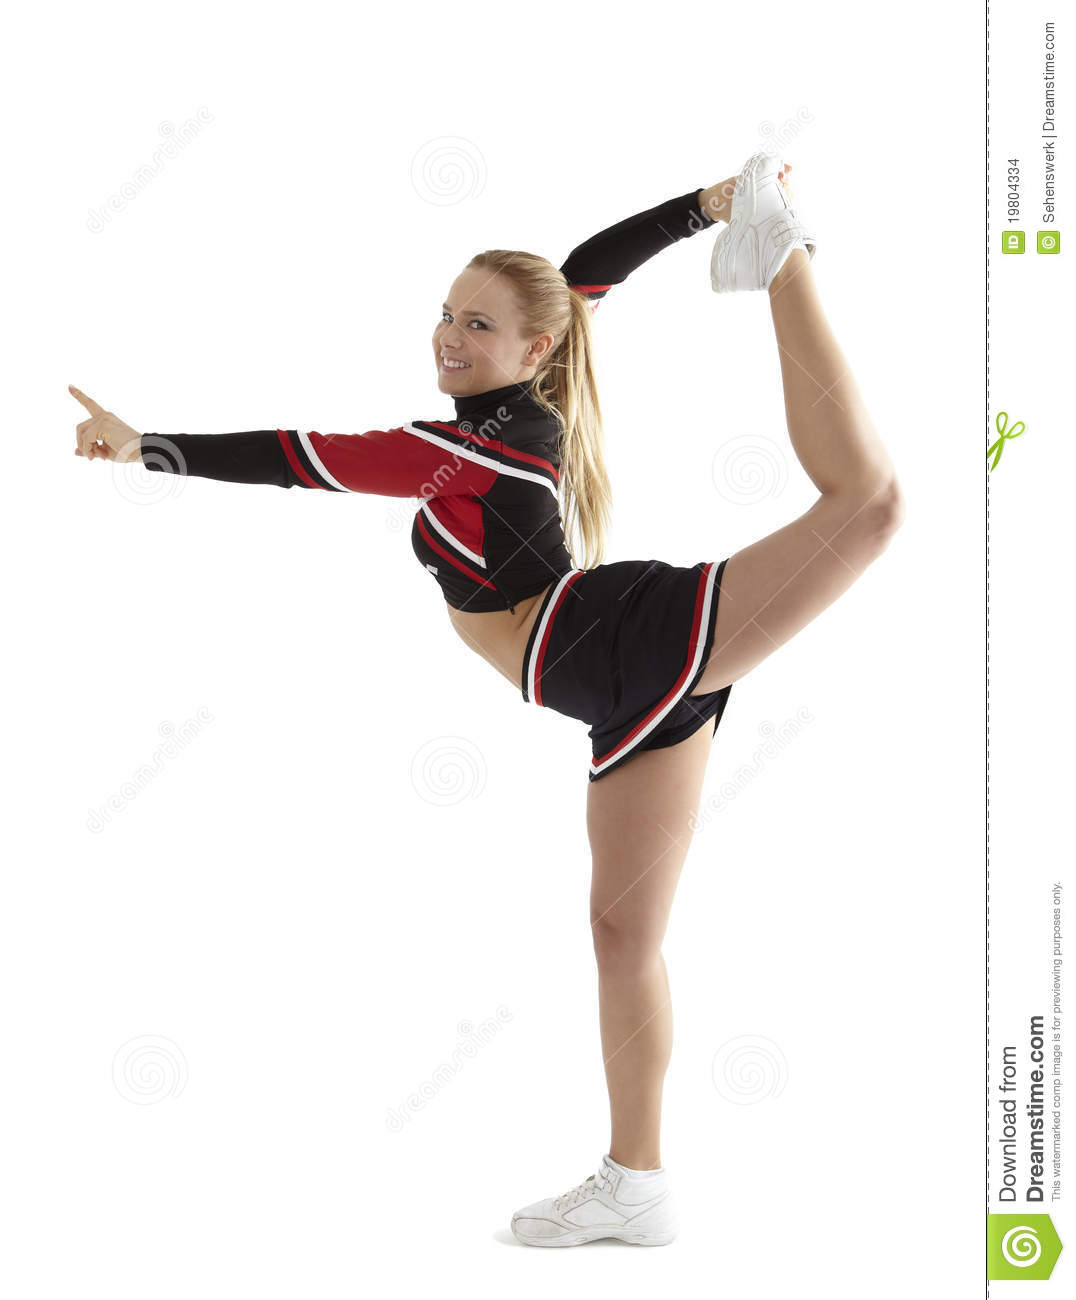 cheerleader pose stock photo image of smile  head  flexible 19804334 free clipart of cheerleaders with megaphones free clipart of cheerleaders